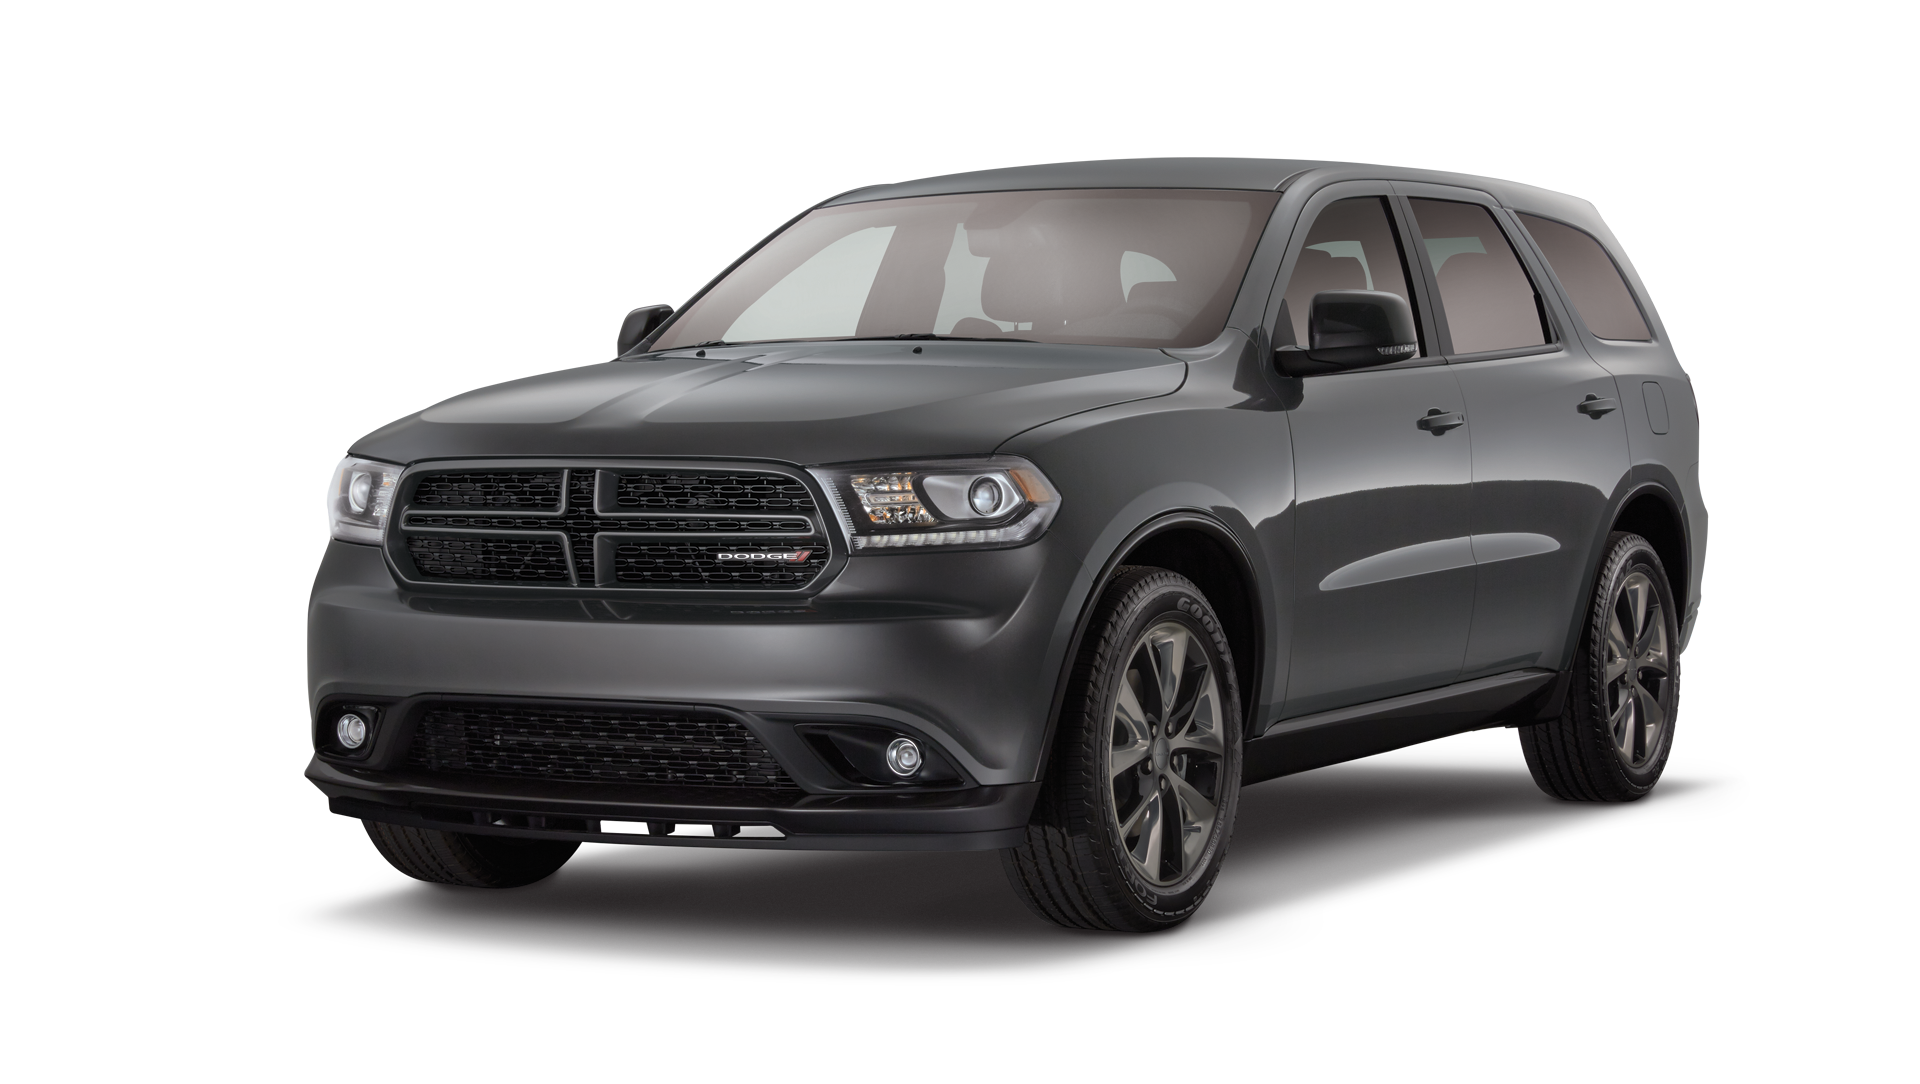 trucks and edition new sort are of its stays concept shows dodge ram truck the pattern work identical for some exhibit output